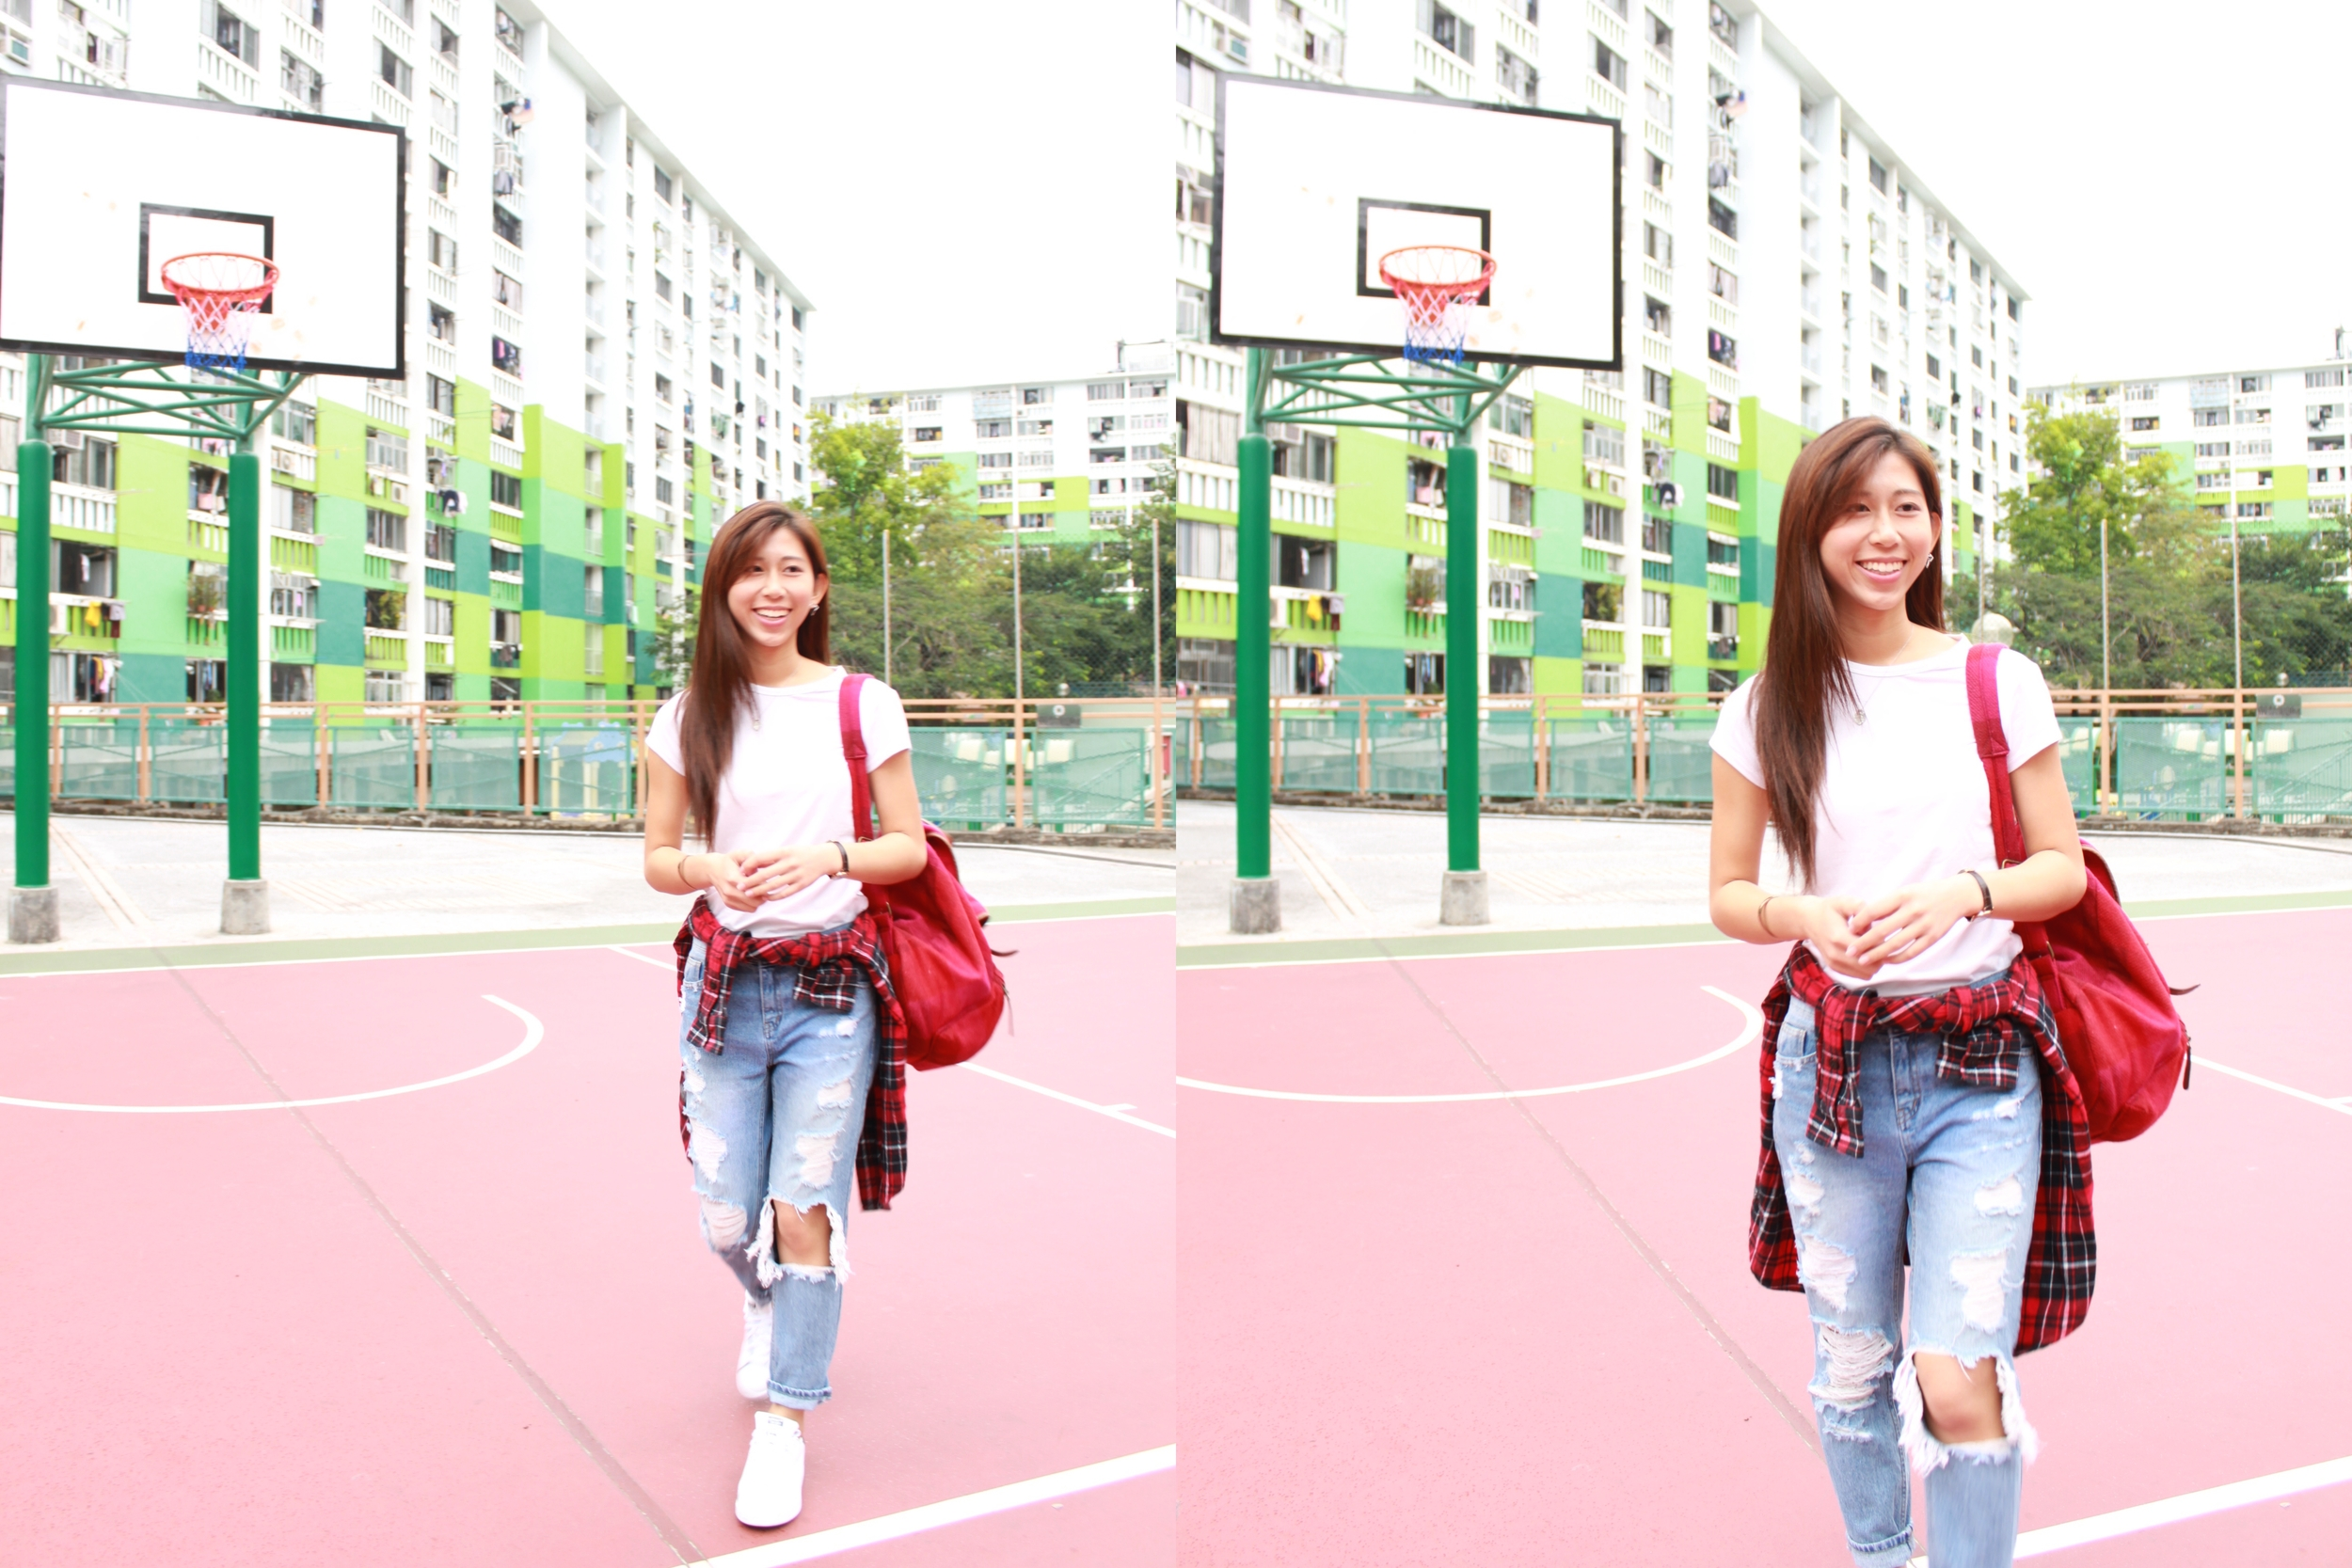 Fresh Sugar Petal  H&M white basic tee / Korea ripped boyfriend jeans / Red checkered shirt / Jack Wills red backpack /  Adidas Originals Stan Smith shoes